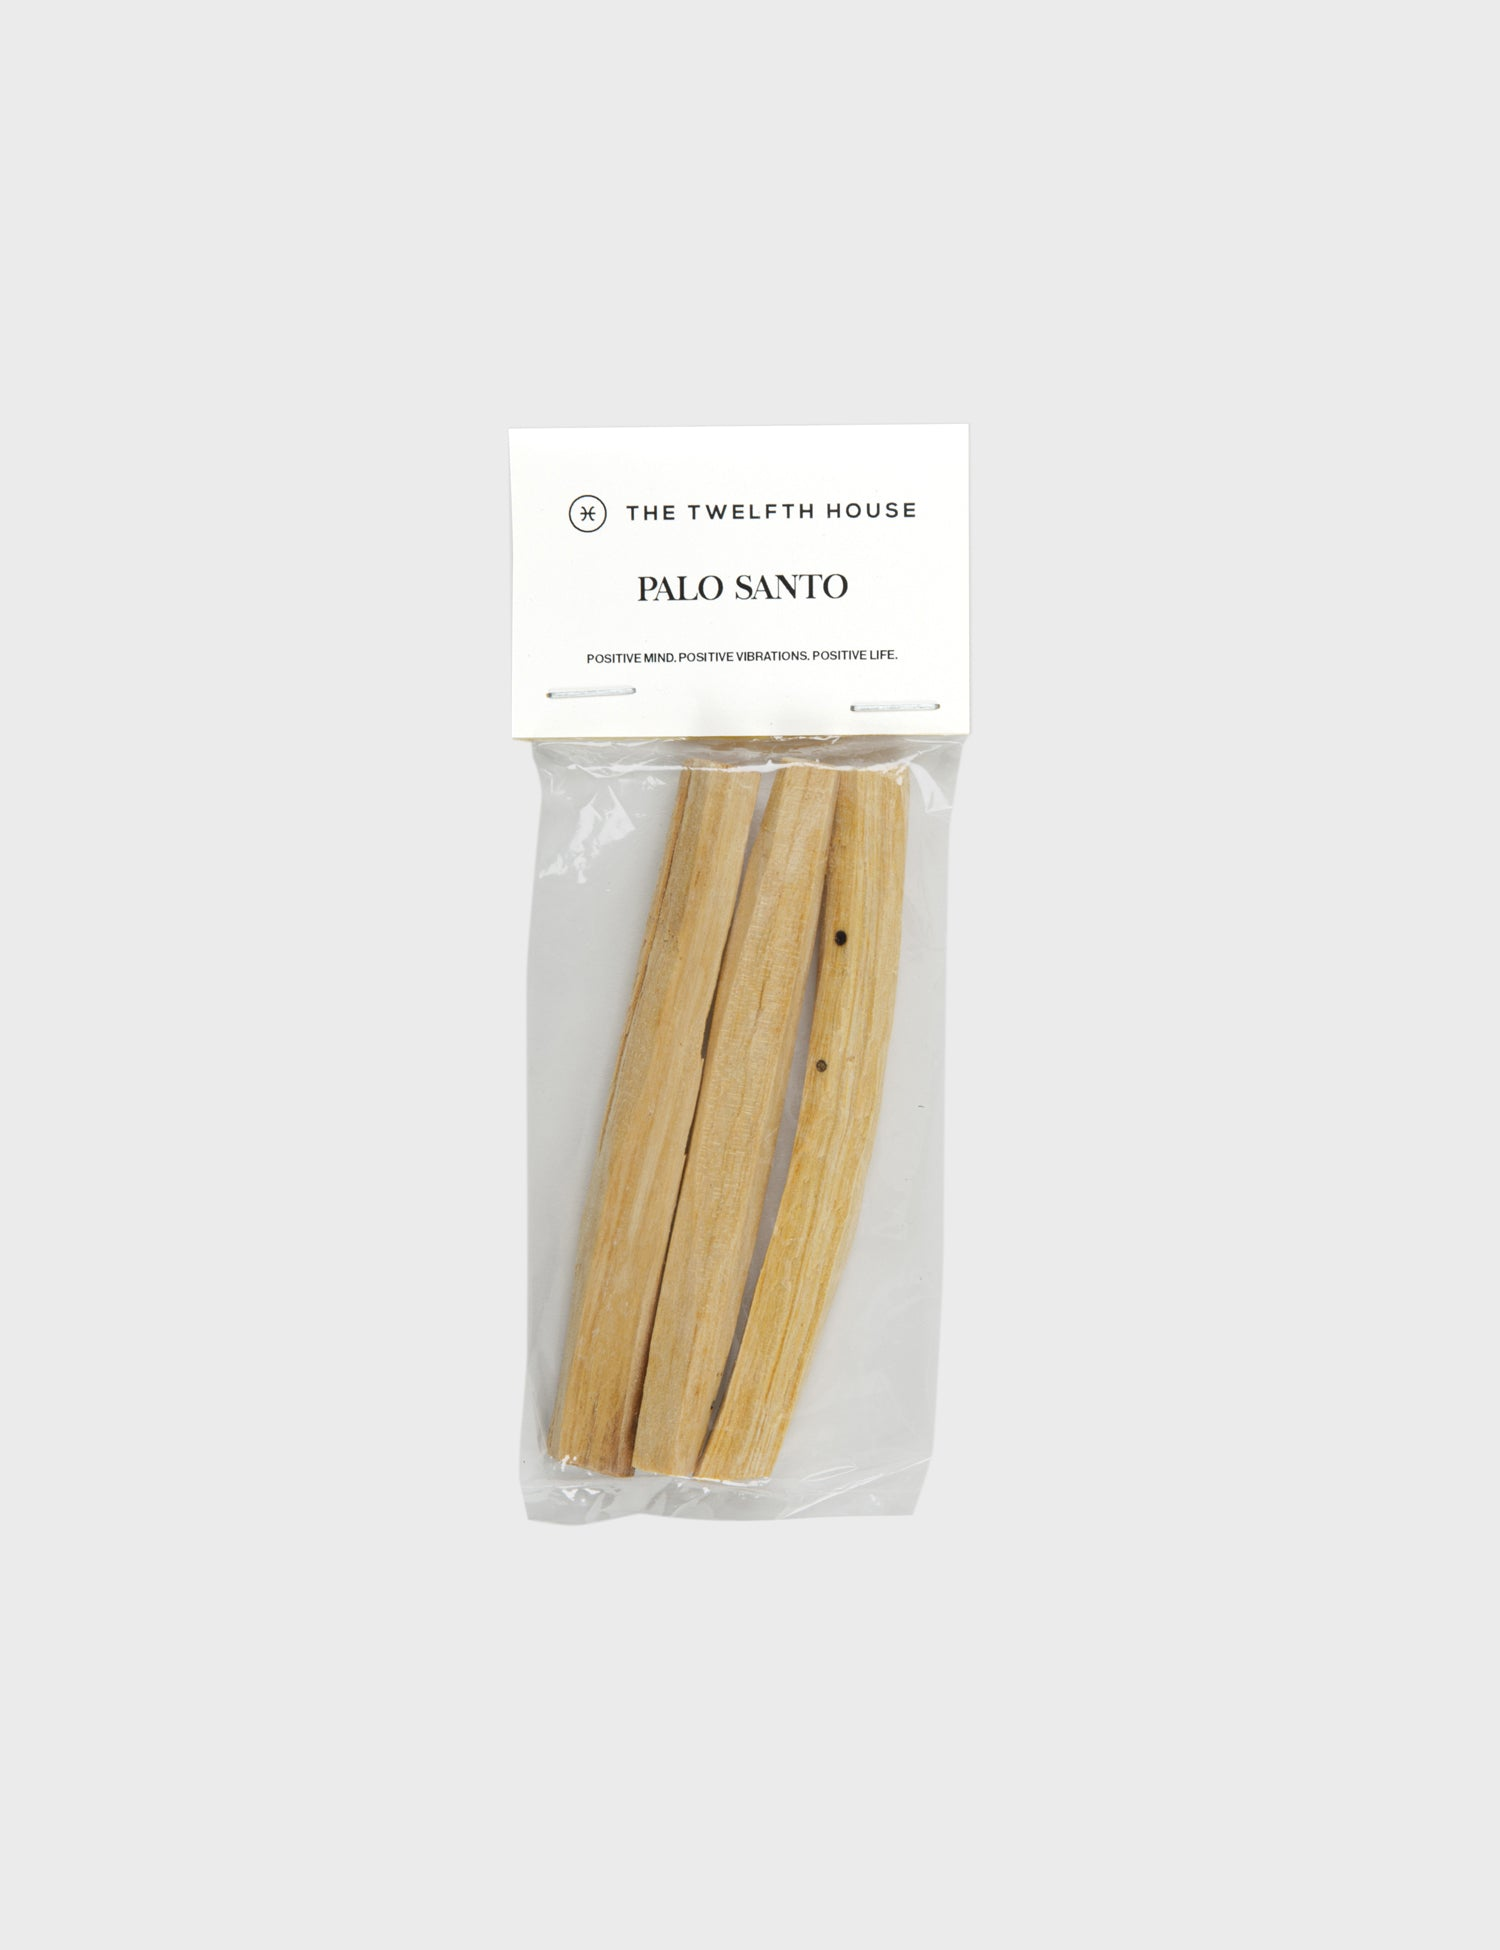 products/tth_2021_home-palosanto_01.jpg